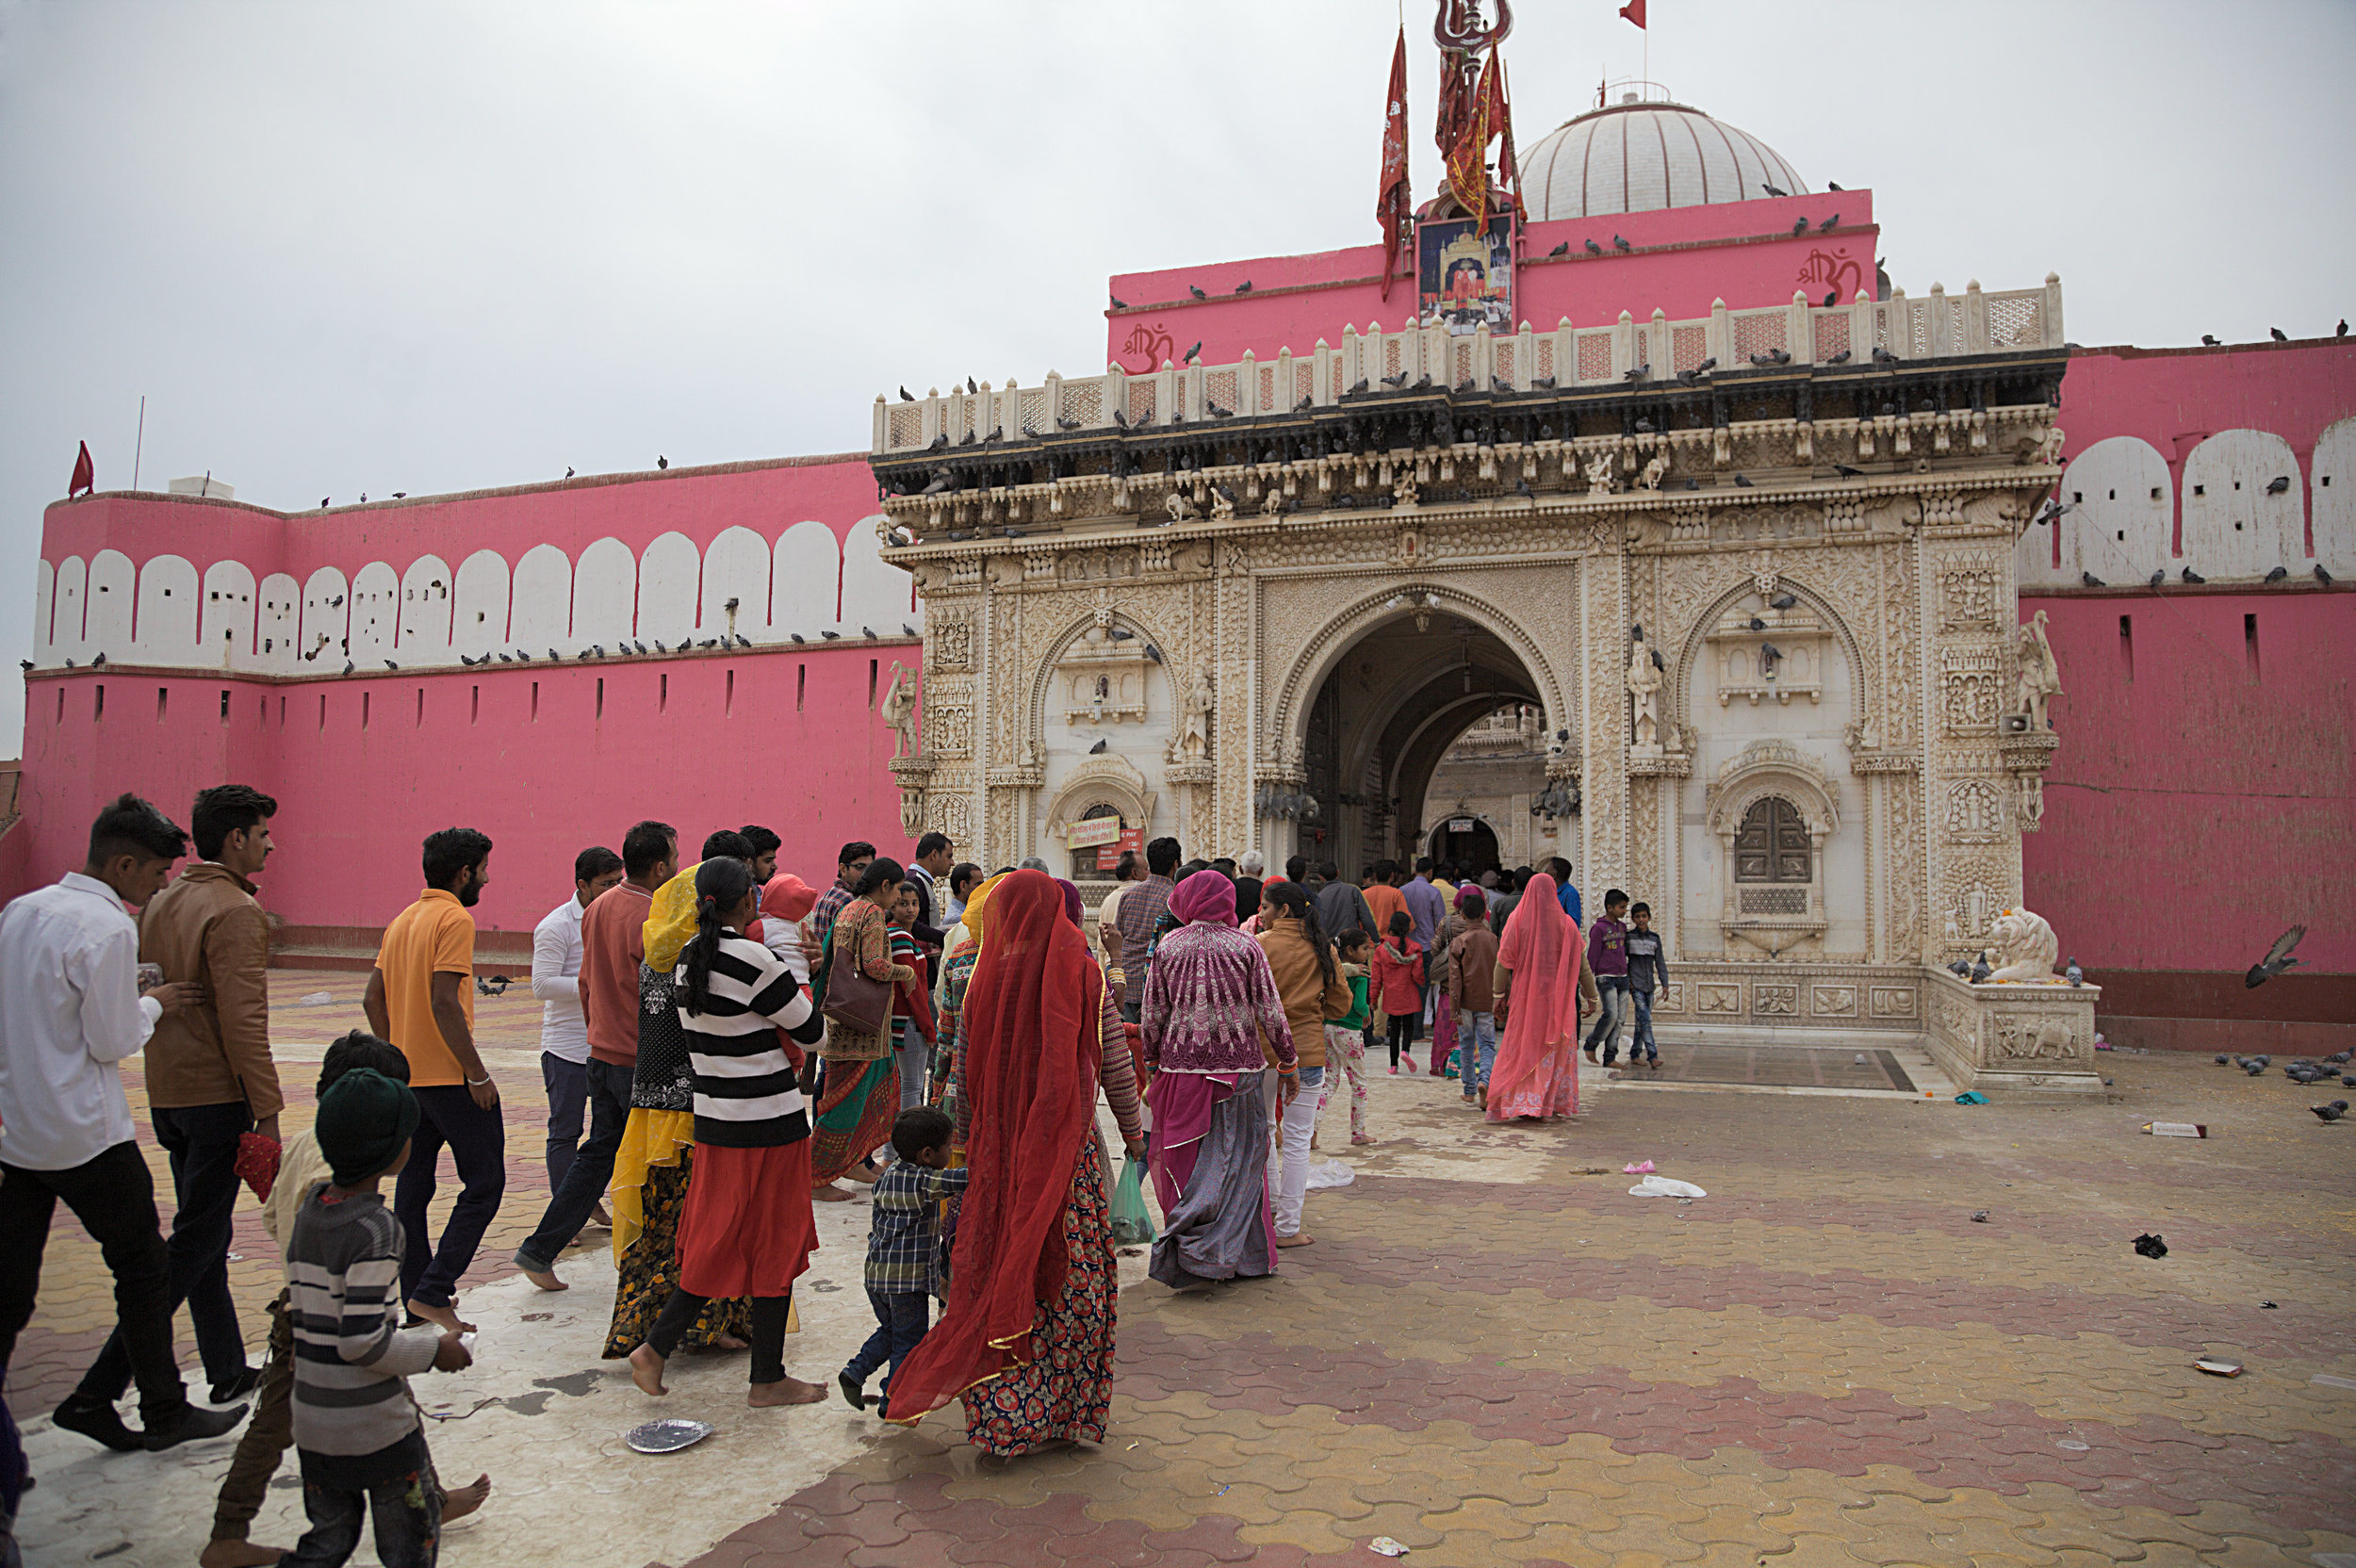 Worshippers entering Karni Mata temple in Rajasthan. This temple is home to thousands of rats and it is believed a sighting of a white rat will bring you luck.